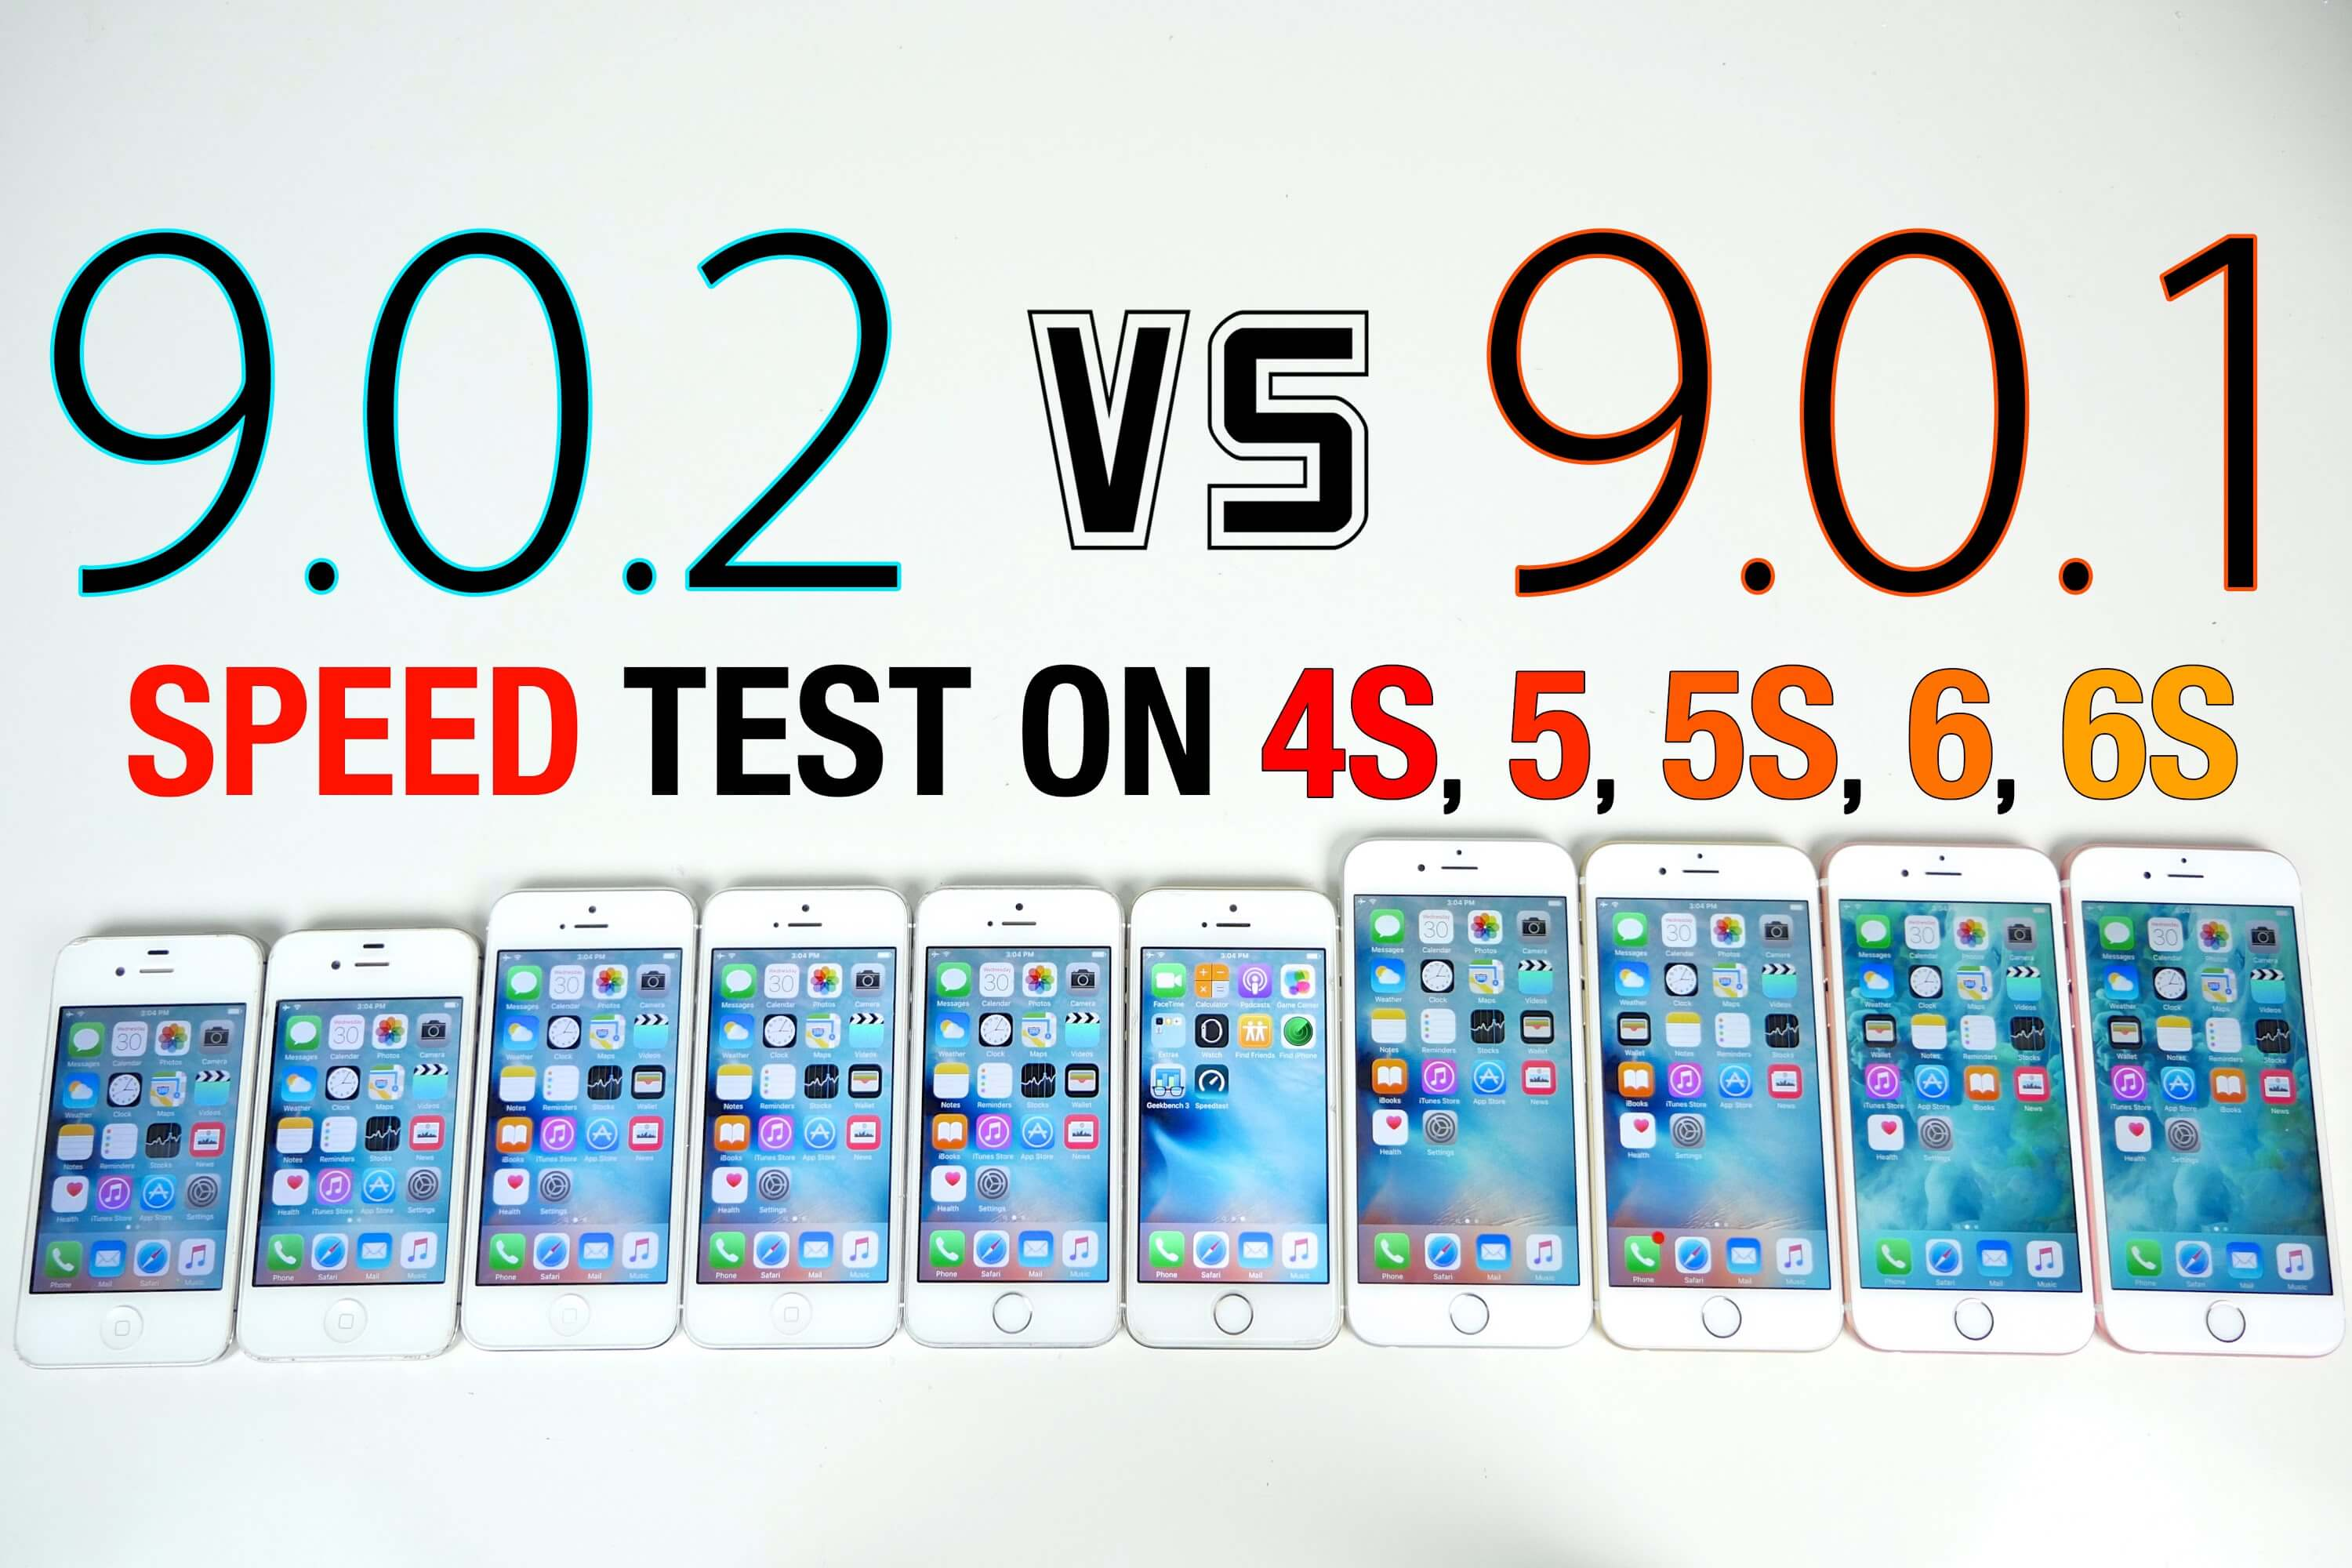 iOS 9.0.2 VS iOS 9.0.1 iPhone 6S, 6, 5S, 5 & 4S